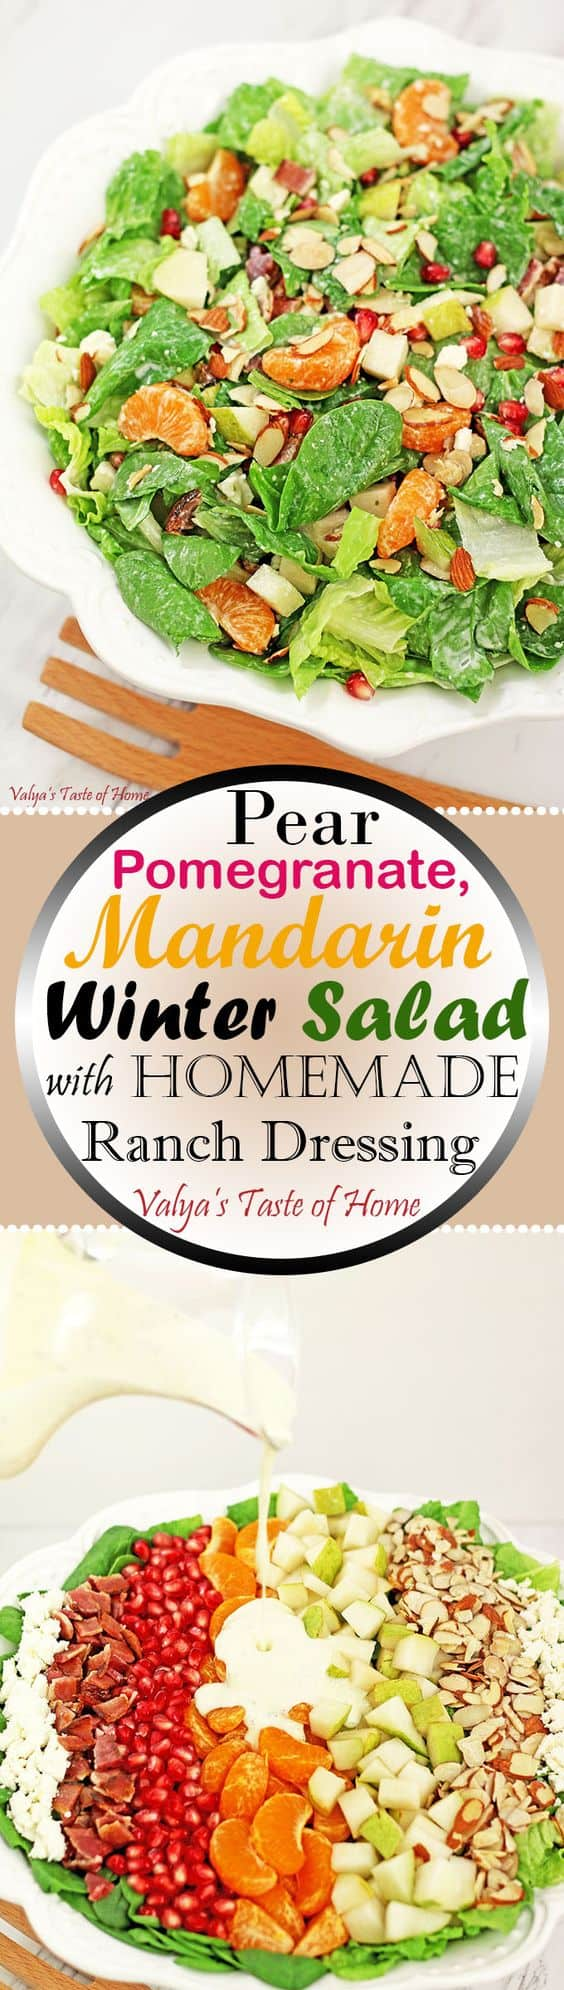 During cold and gloomy winter days, we need a little brightness on our table. How about this bright and colorful Pear Pomegranate Mandarin Winter Salad with Homemade Ranch Dressing loaded with some late-season harvested fruit? It offers not only a beautiful display of a color on your table but adds a variety of flavors and nutrition, which tends to decline during the winter season. It also happens to be very delicious! #pearpomegranatemandarinsalad #wintersalad #homemaderanch #valyastateofhome